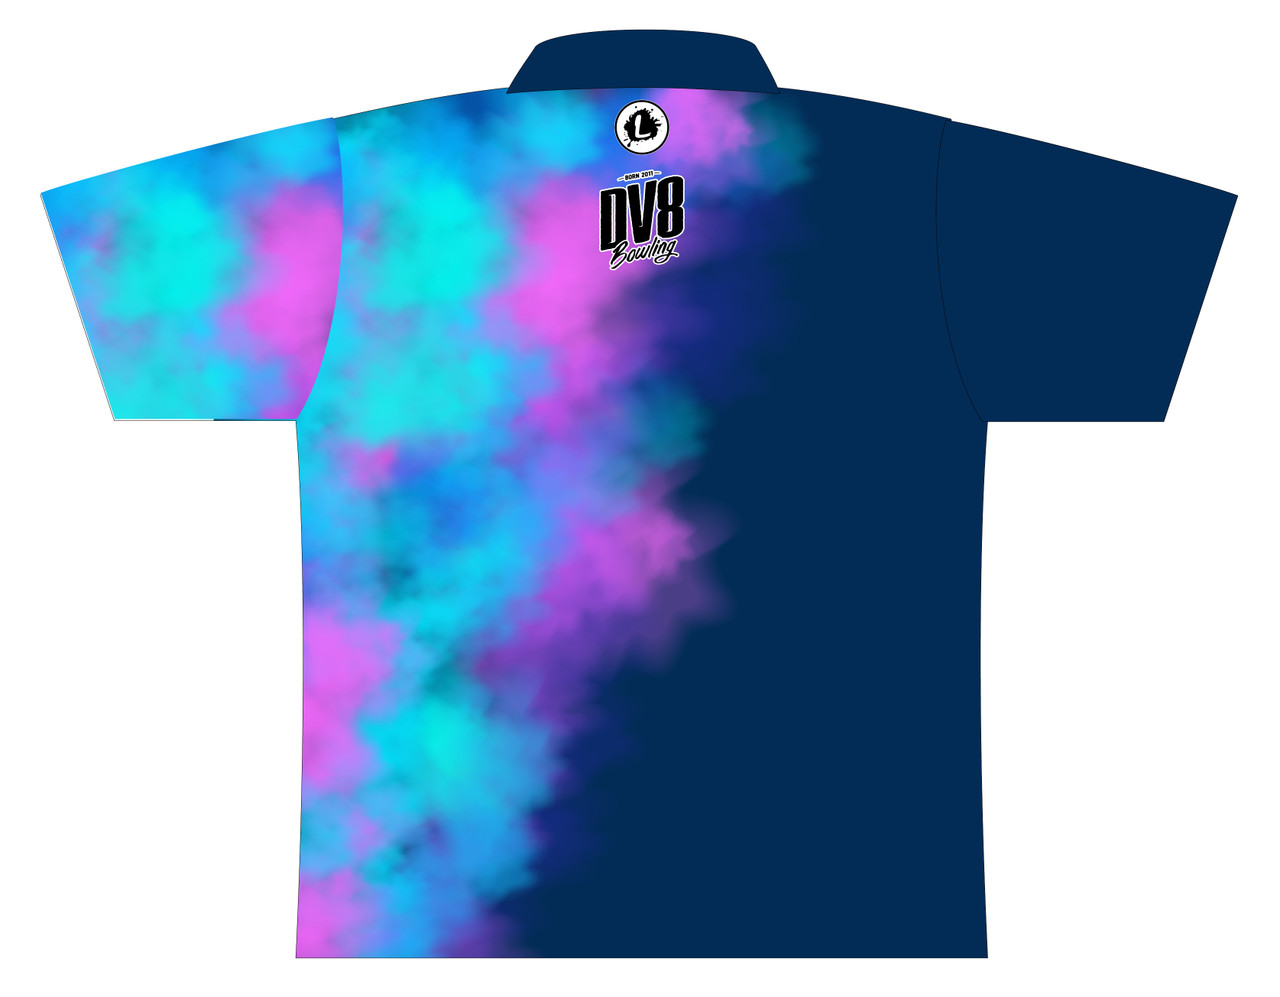 DV8 EXPRESS DS Jersey Style 0729